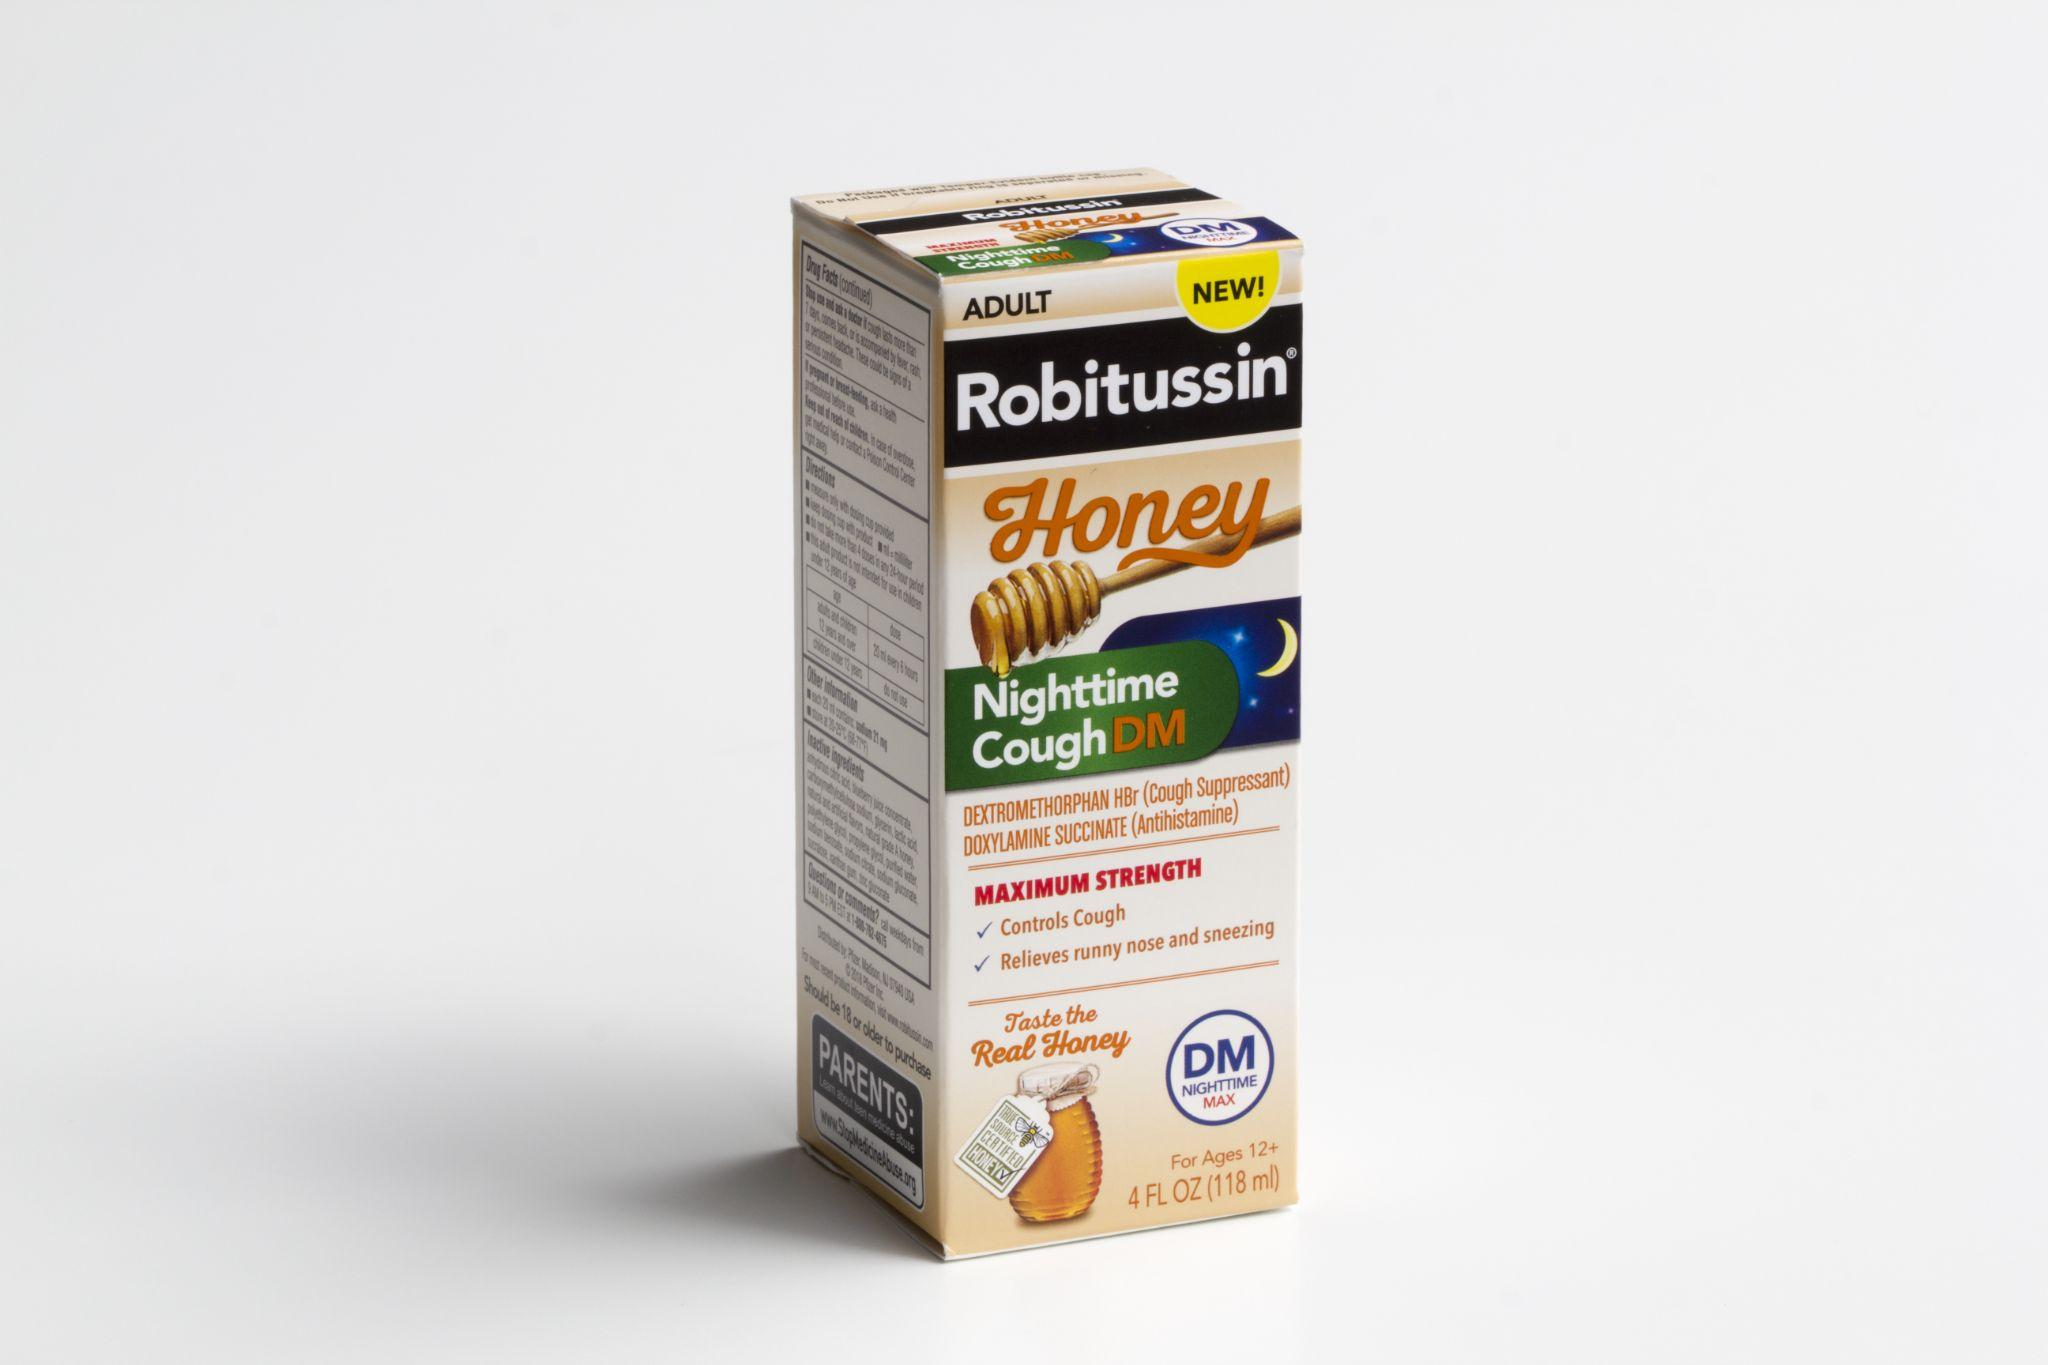 A pack of Robitussin Honey